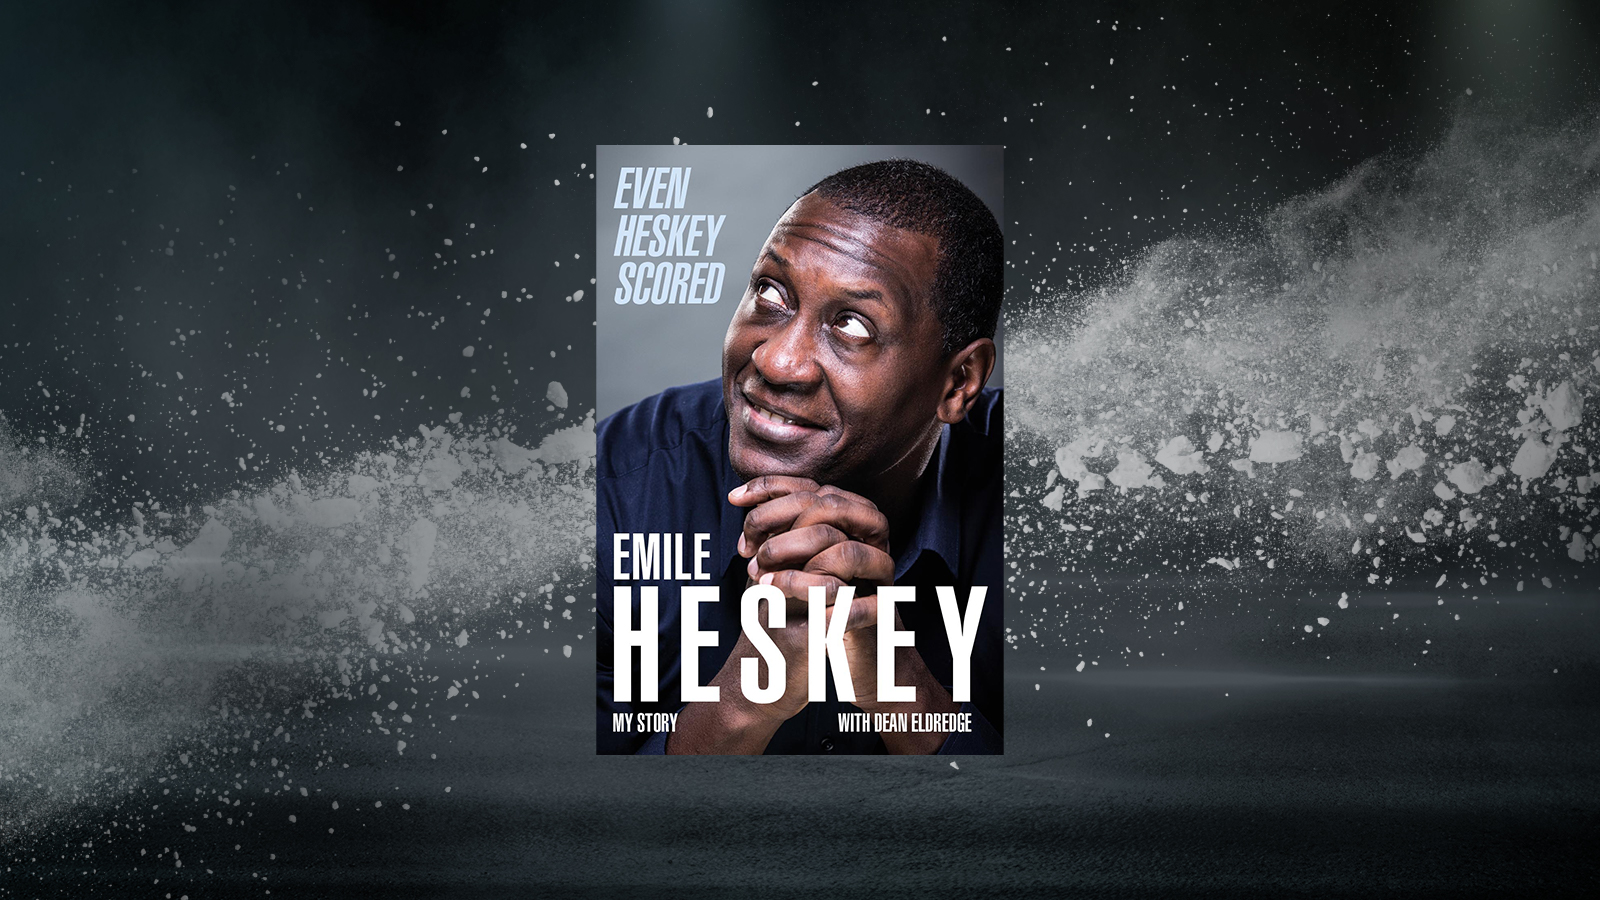 Interview with Dean Eldredge, Ghostwriter of Emile Heskey's Autobiography, 'Even Heskey Scored'.